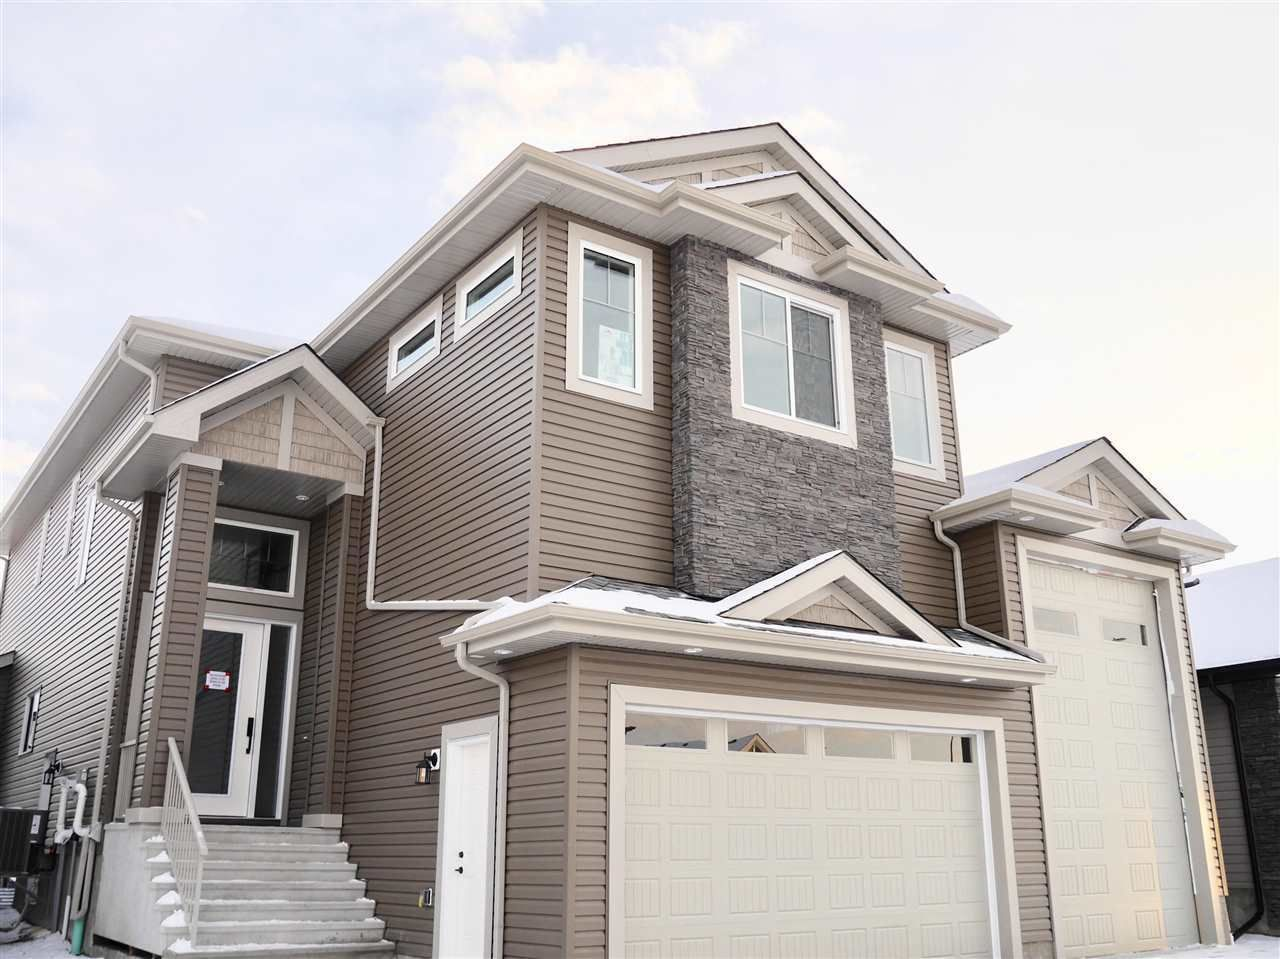 Edmonton New Homes Listed Mls New Homes In The Edmonton Real Estate Market By Edmonton Home Builders Including Leduc Spruce Gr New Homes Home Builders Home